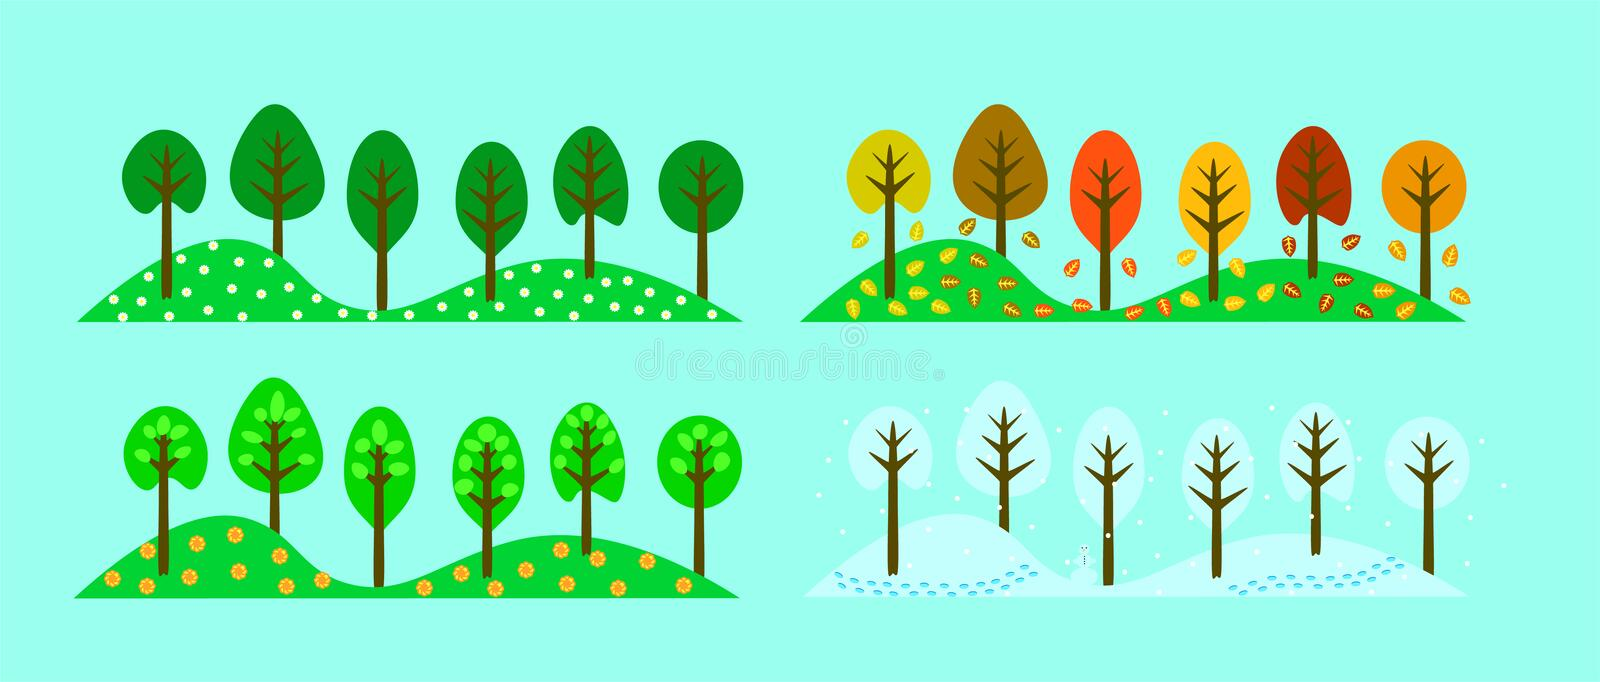 Trees in the Change of Four Seasons royalty free illustration